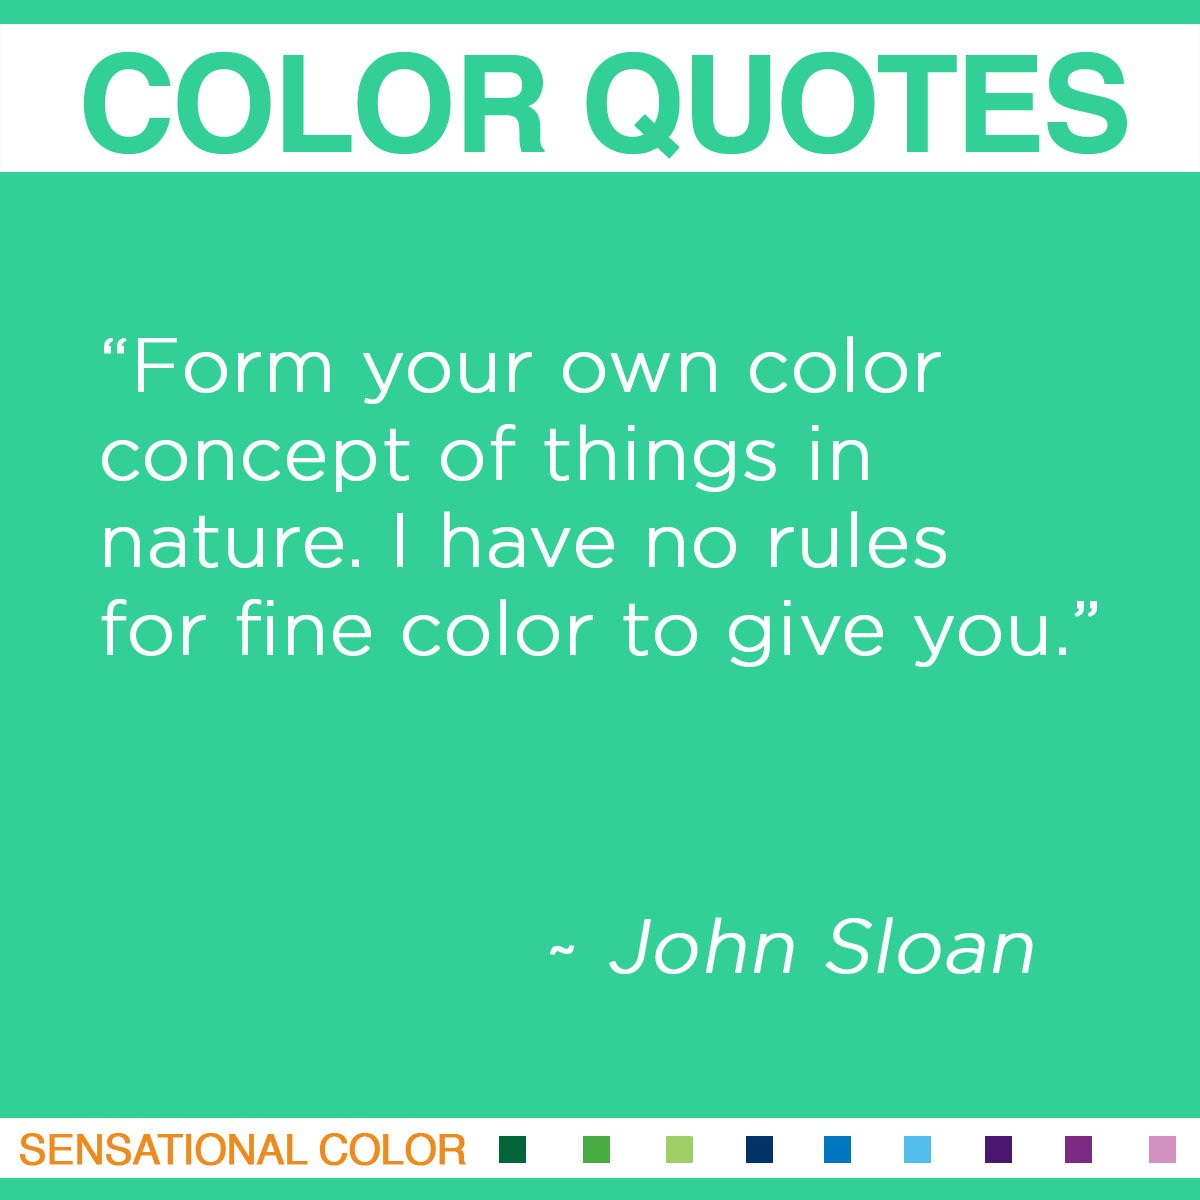 """Form your own color concept of things in nature. I have no rules for fine color to give you."" - John Sloan"